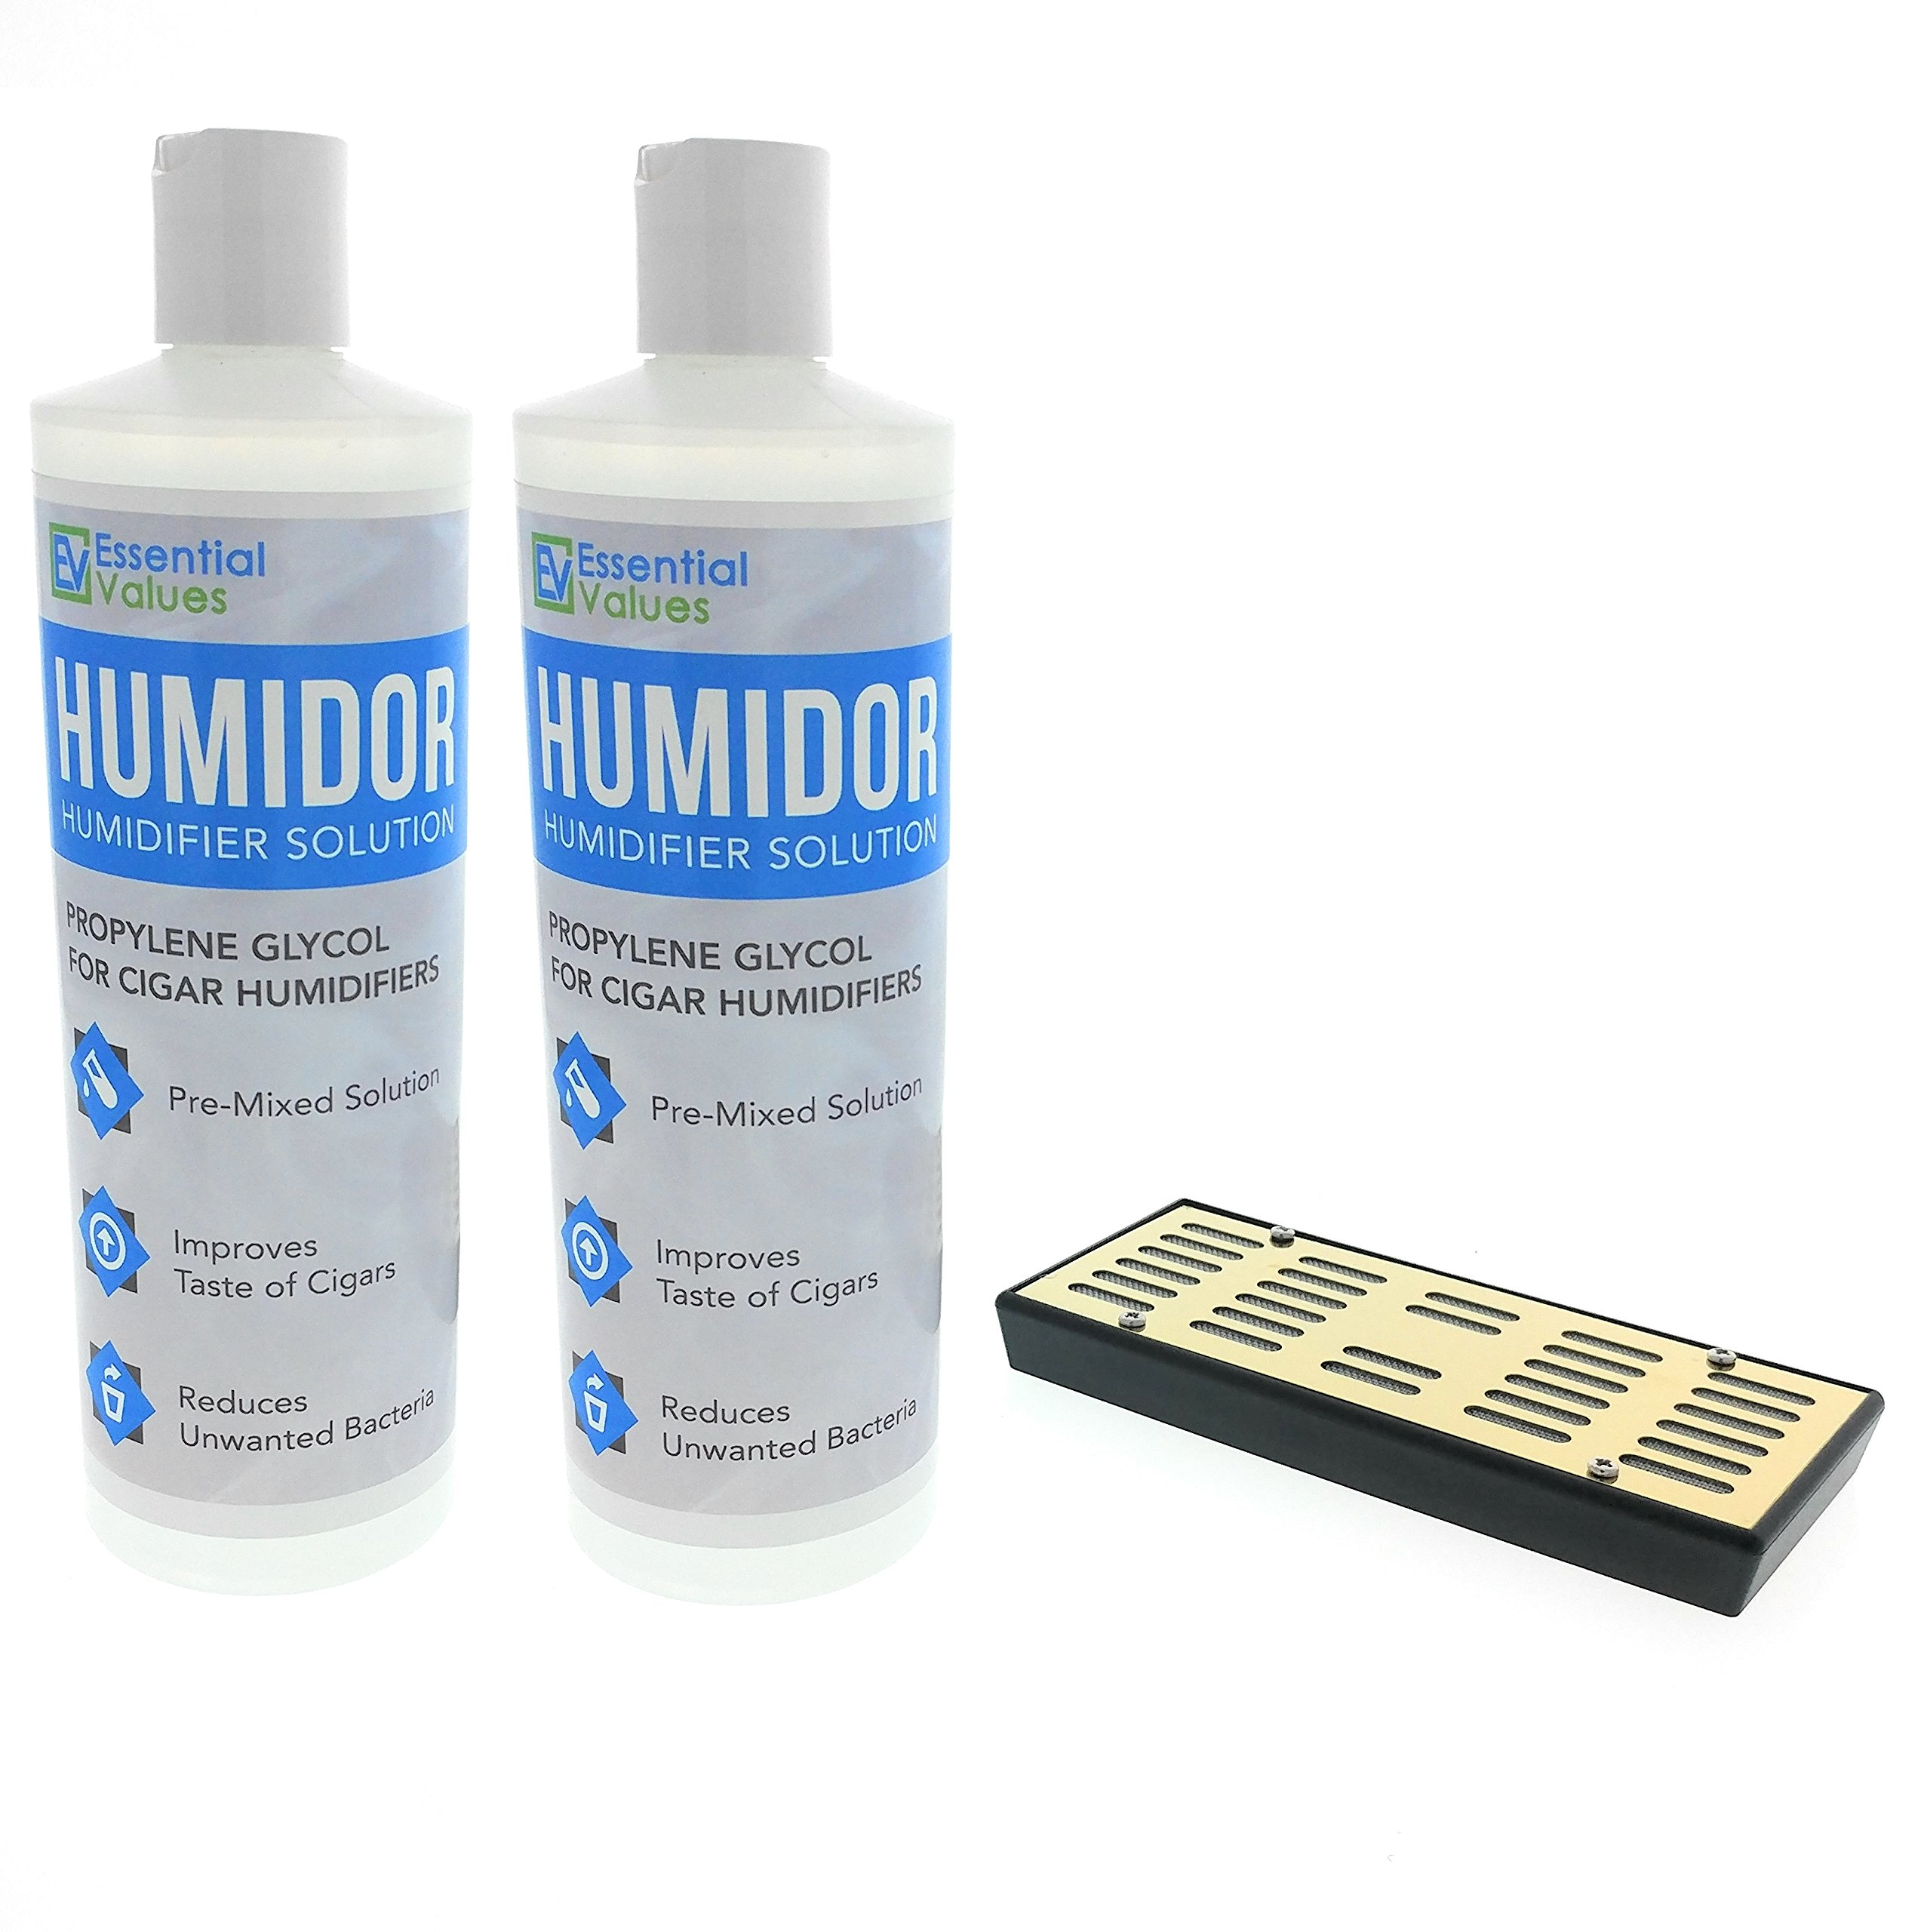 2PK Humidor Solution & Cigar Humidor Humidifier Combo, 16oz Propylene Glycol and Cigar Humidifier for 1-250 Cigars by Essential Values (Humidifier & 2 Pack Solution) by Essential Values (Image #1)